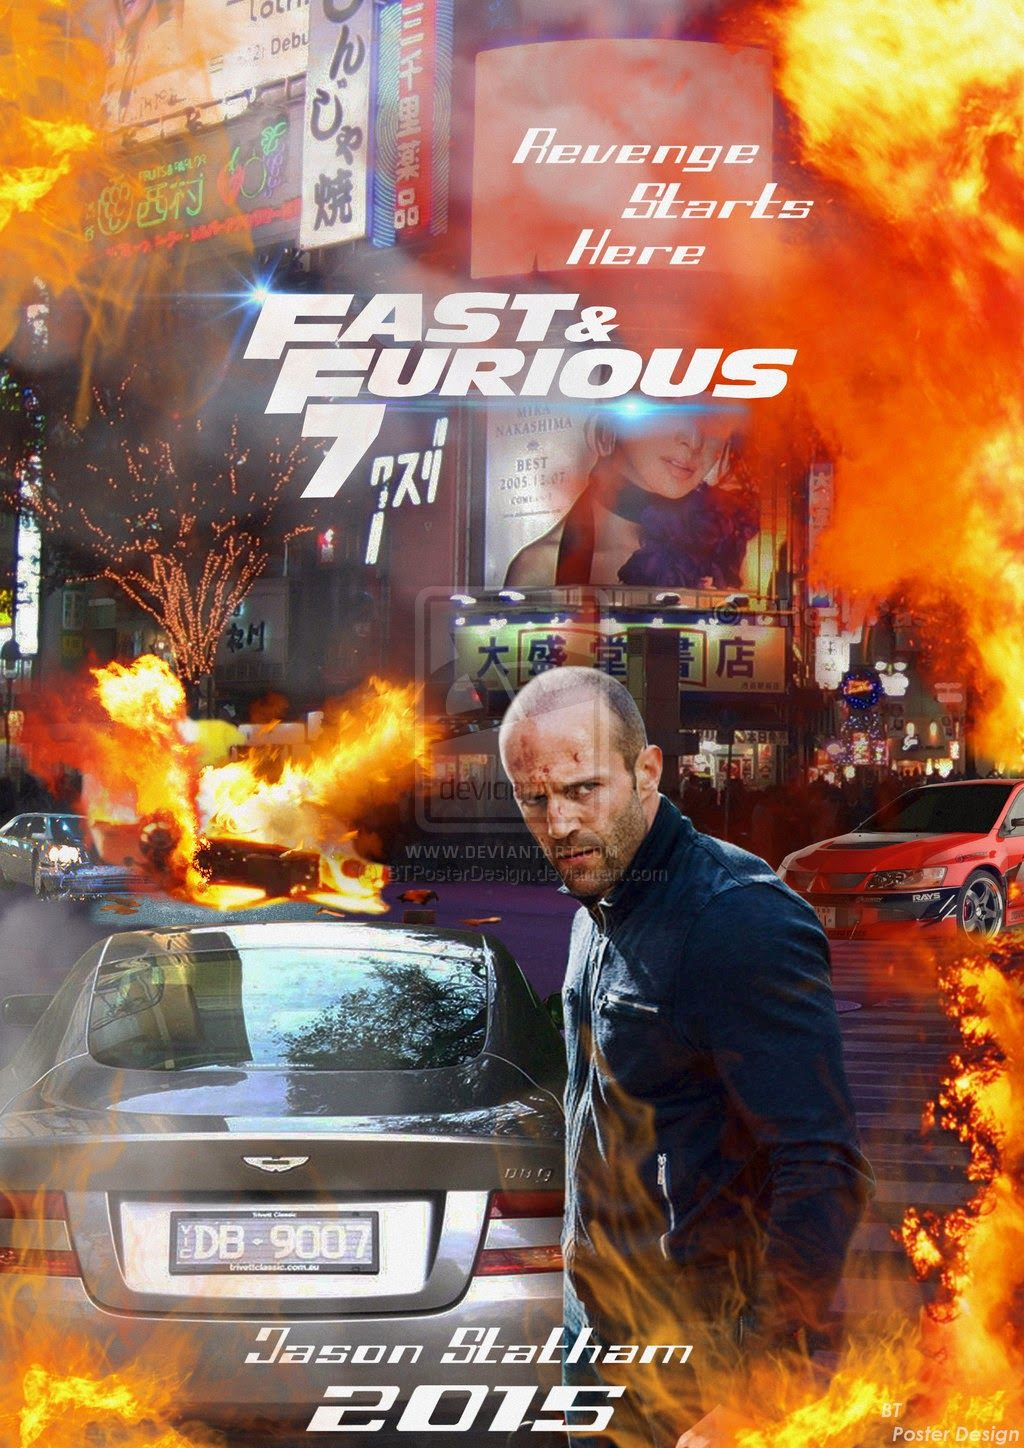 fast and furious 7 full movie download in hindi openload